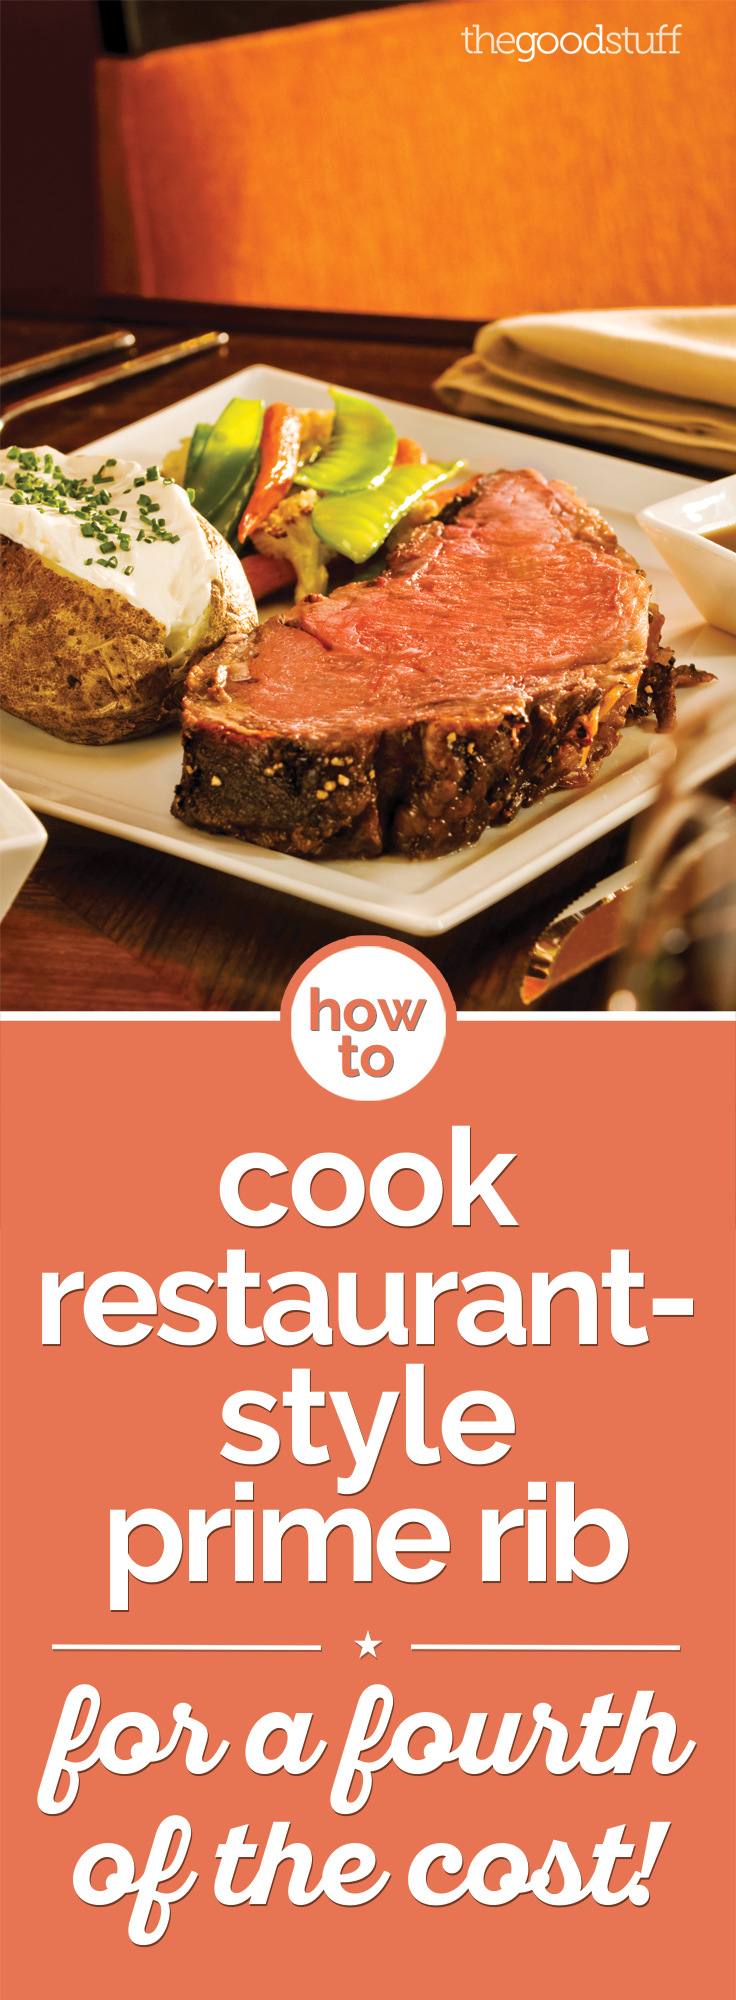 How to Cook Prime Rib for a Fourth of the Cost! | thegoodstuff